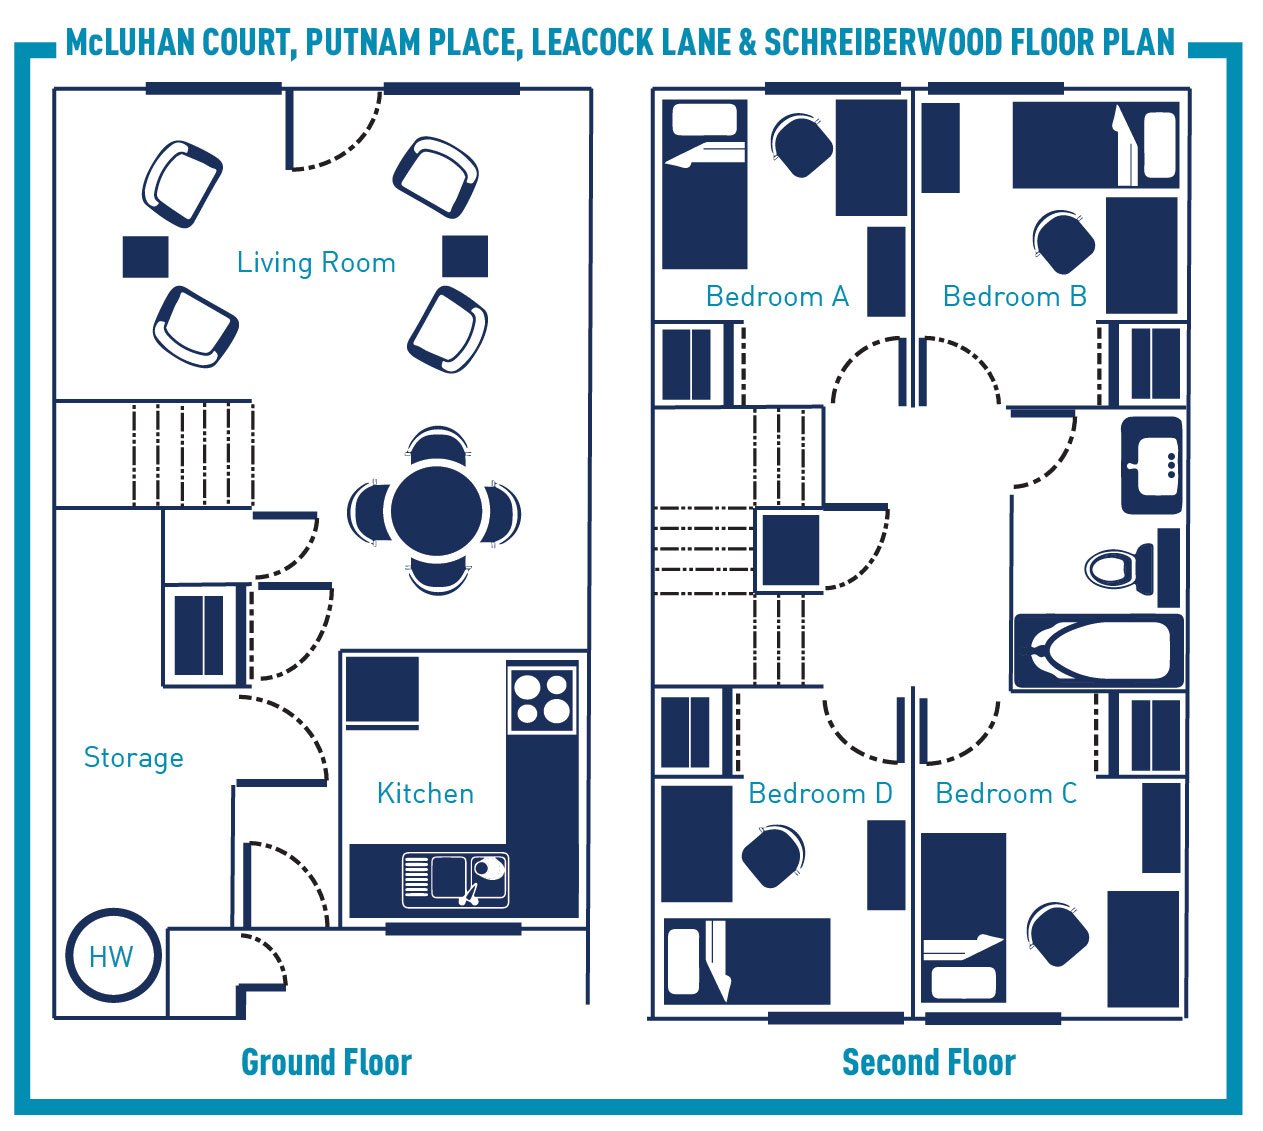 Single Bedroom In Townhouse Style Residences: McLuhan Court, Putnam Place,  Leacock Lane U0026 Schreiberwood